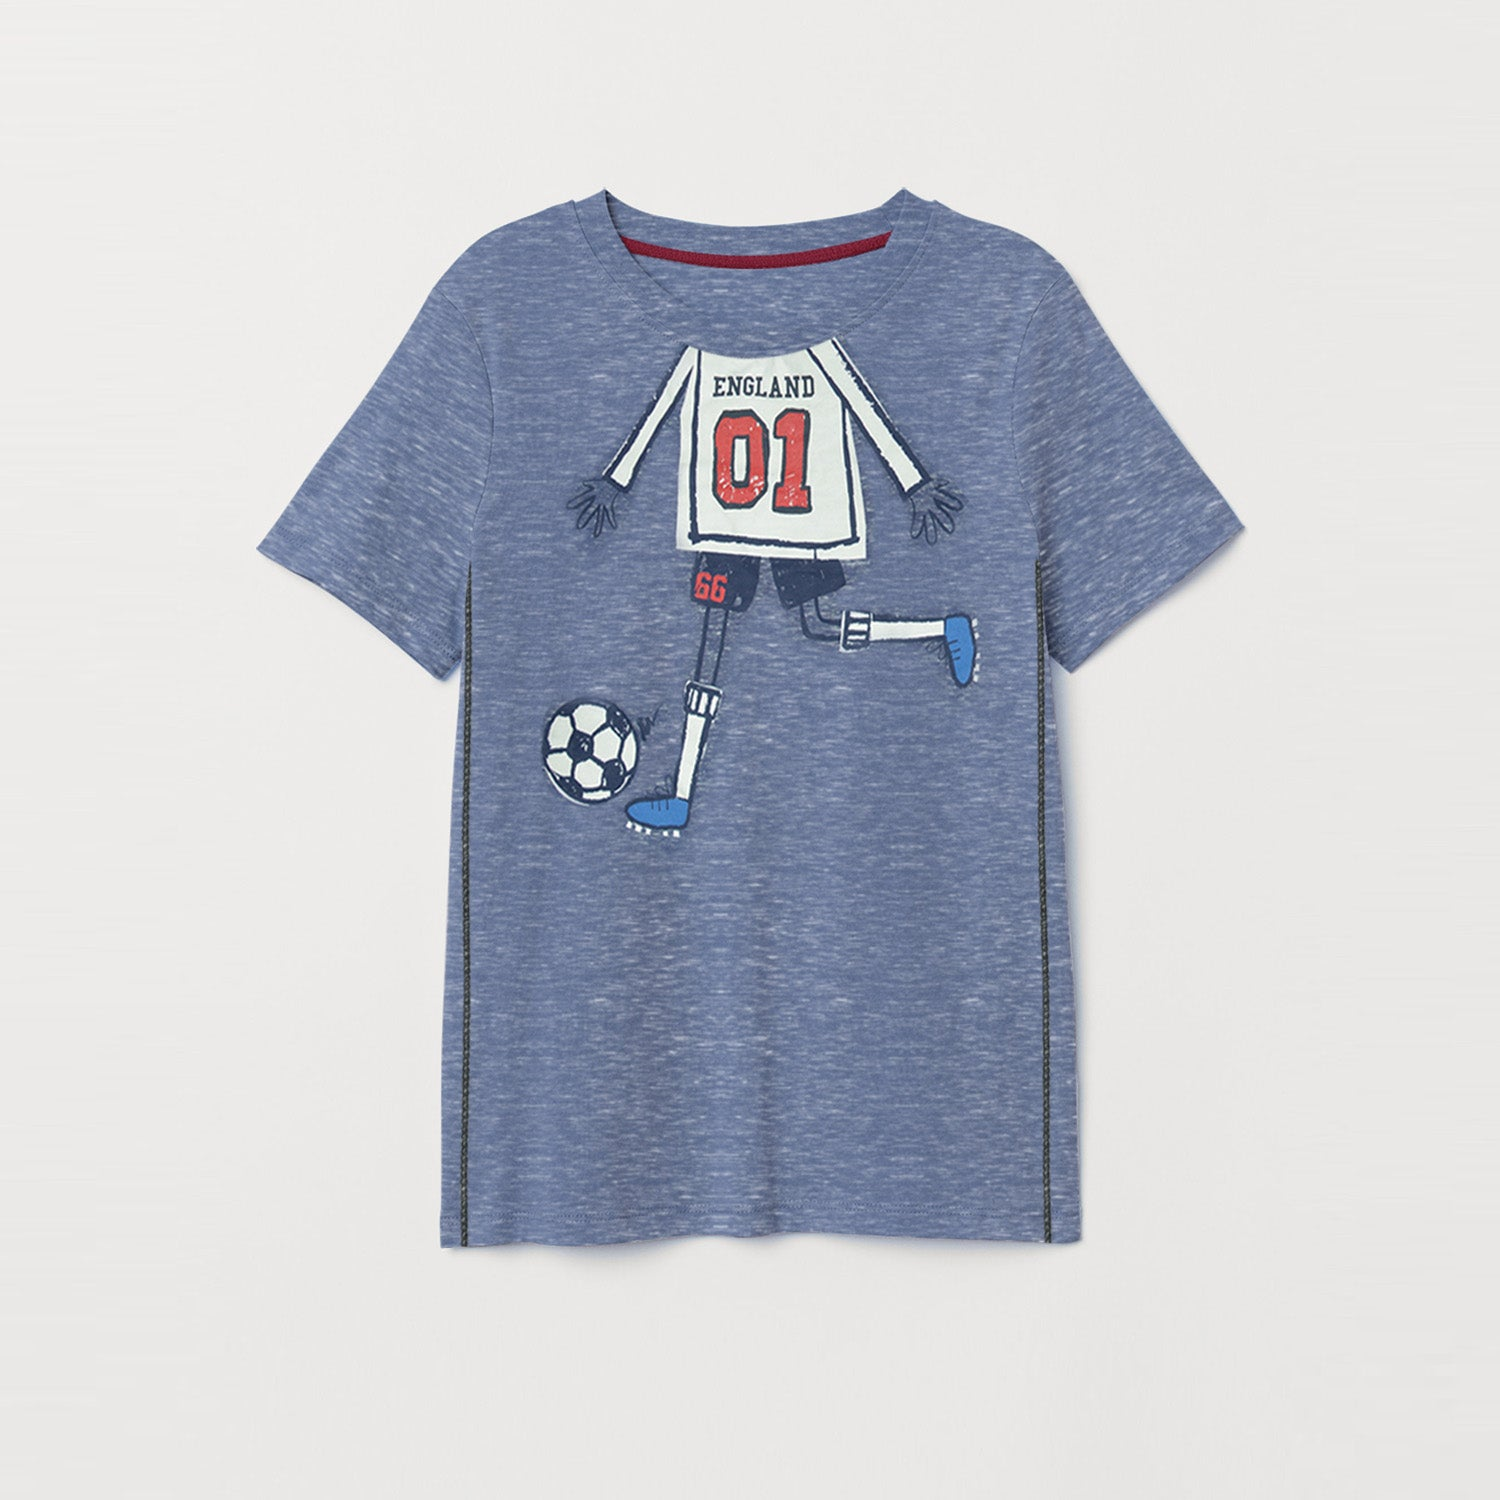 9e38ea51c Next Crew Neck Single Jersey Tee Shirt For Kids-Blue Melange with  Print-BE9033